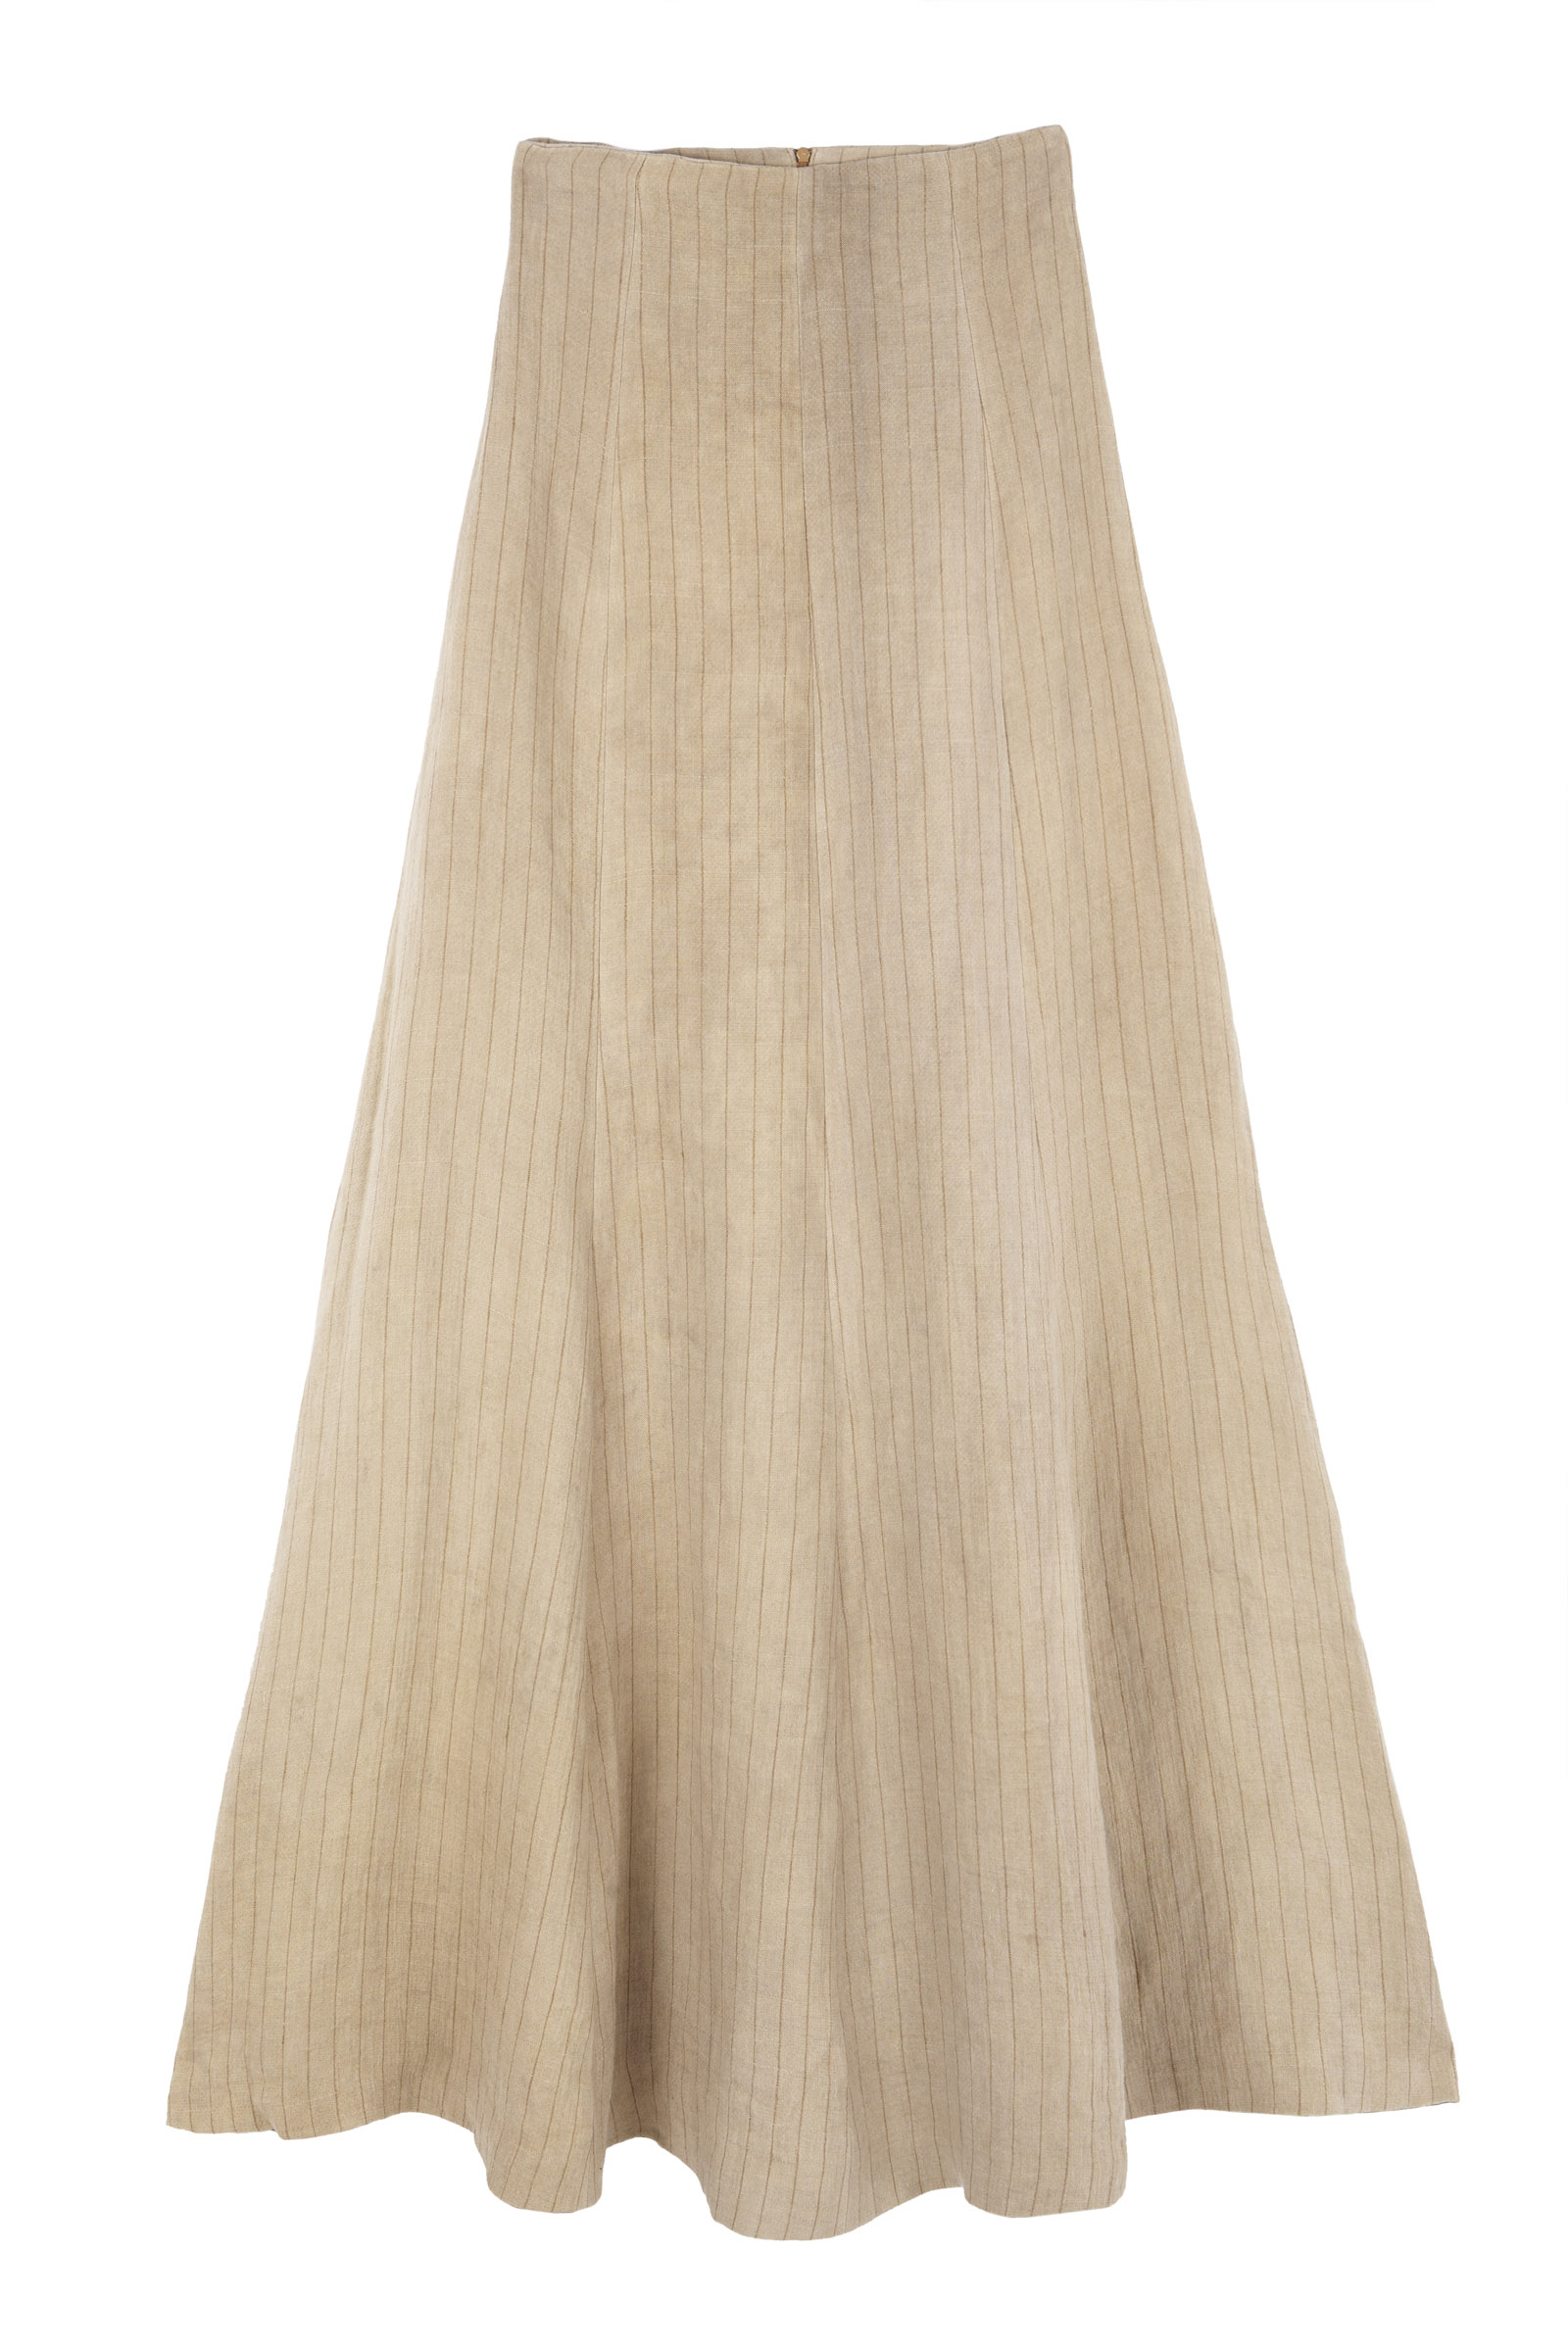 PAJA, STRIPED LINEN SKIRT - Cortana Moda